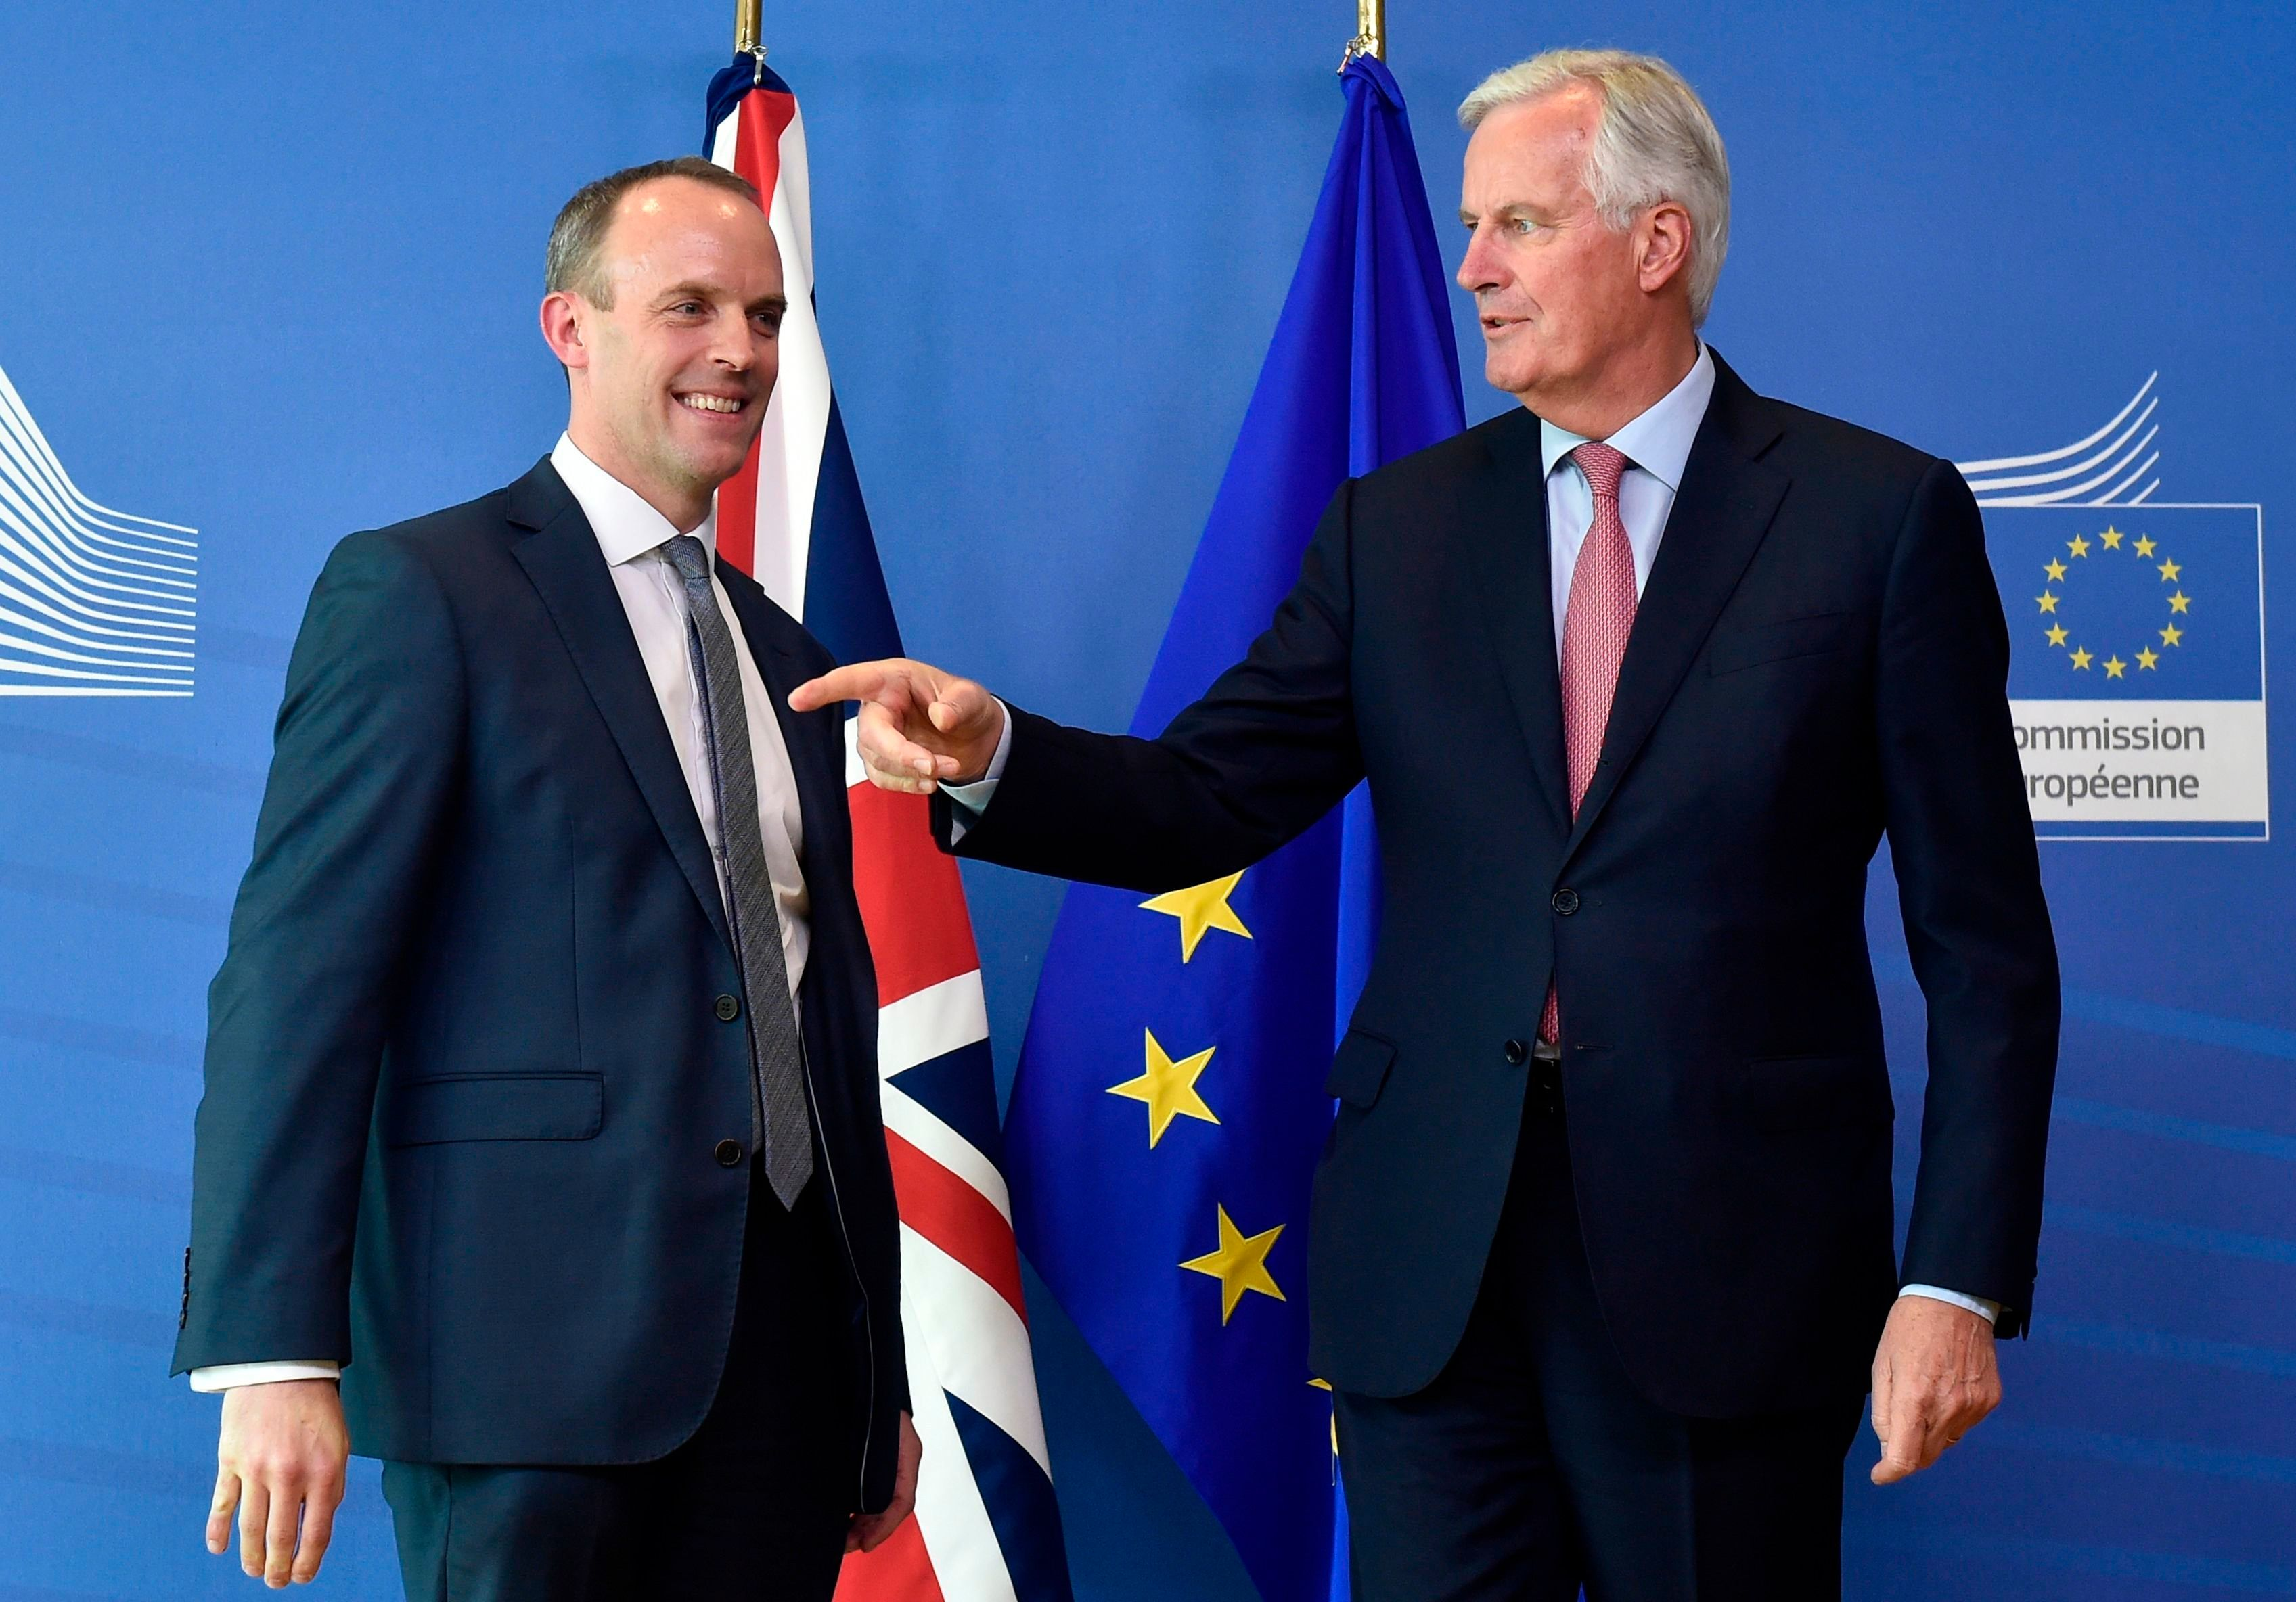 Committee Executive: Dominic Raab Has Got It